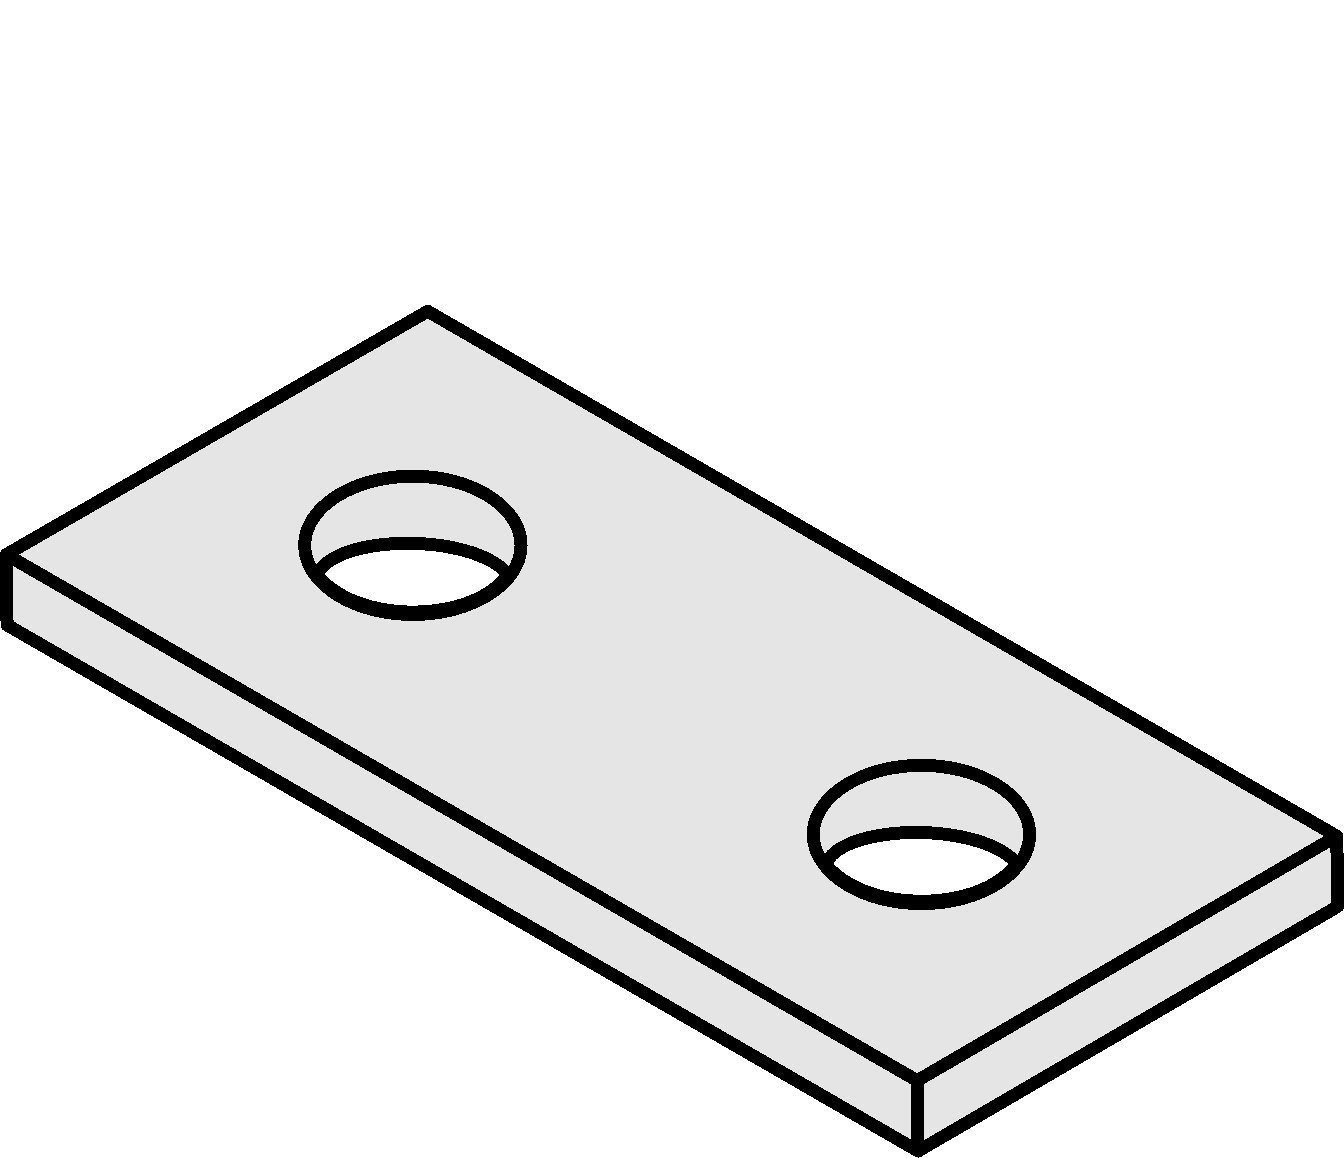 VERSABAR VF-1201 2 Hole Flat Plate Connector Zinc Plated for 1-5/8'' Channel 5/BX